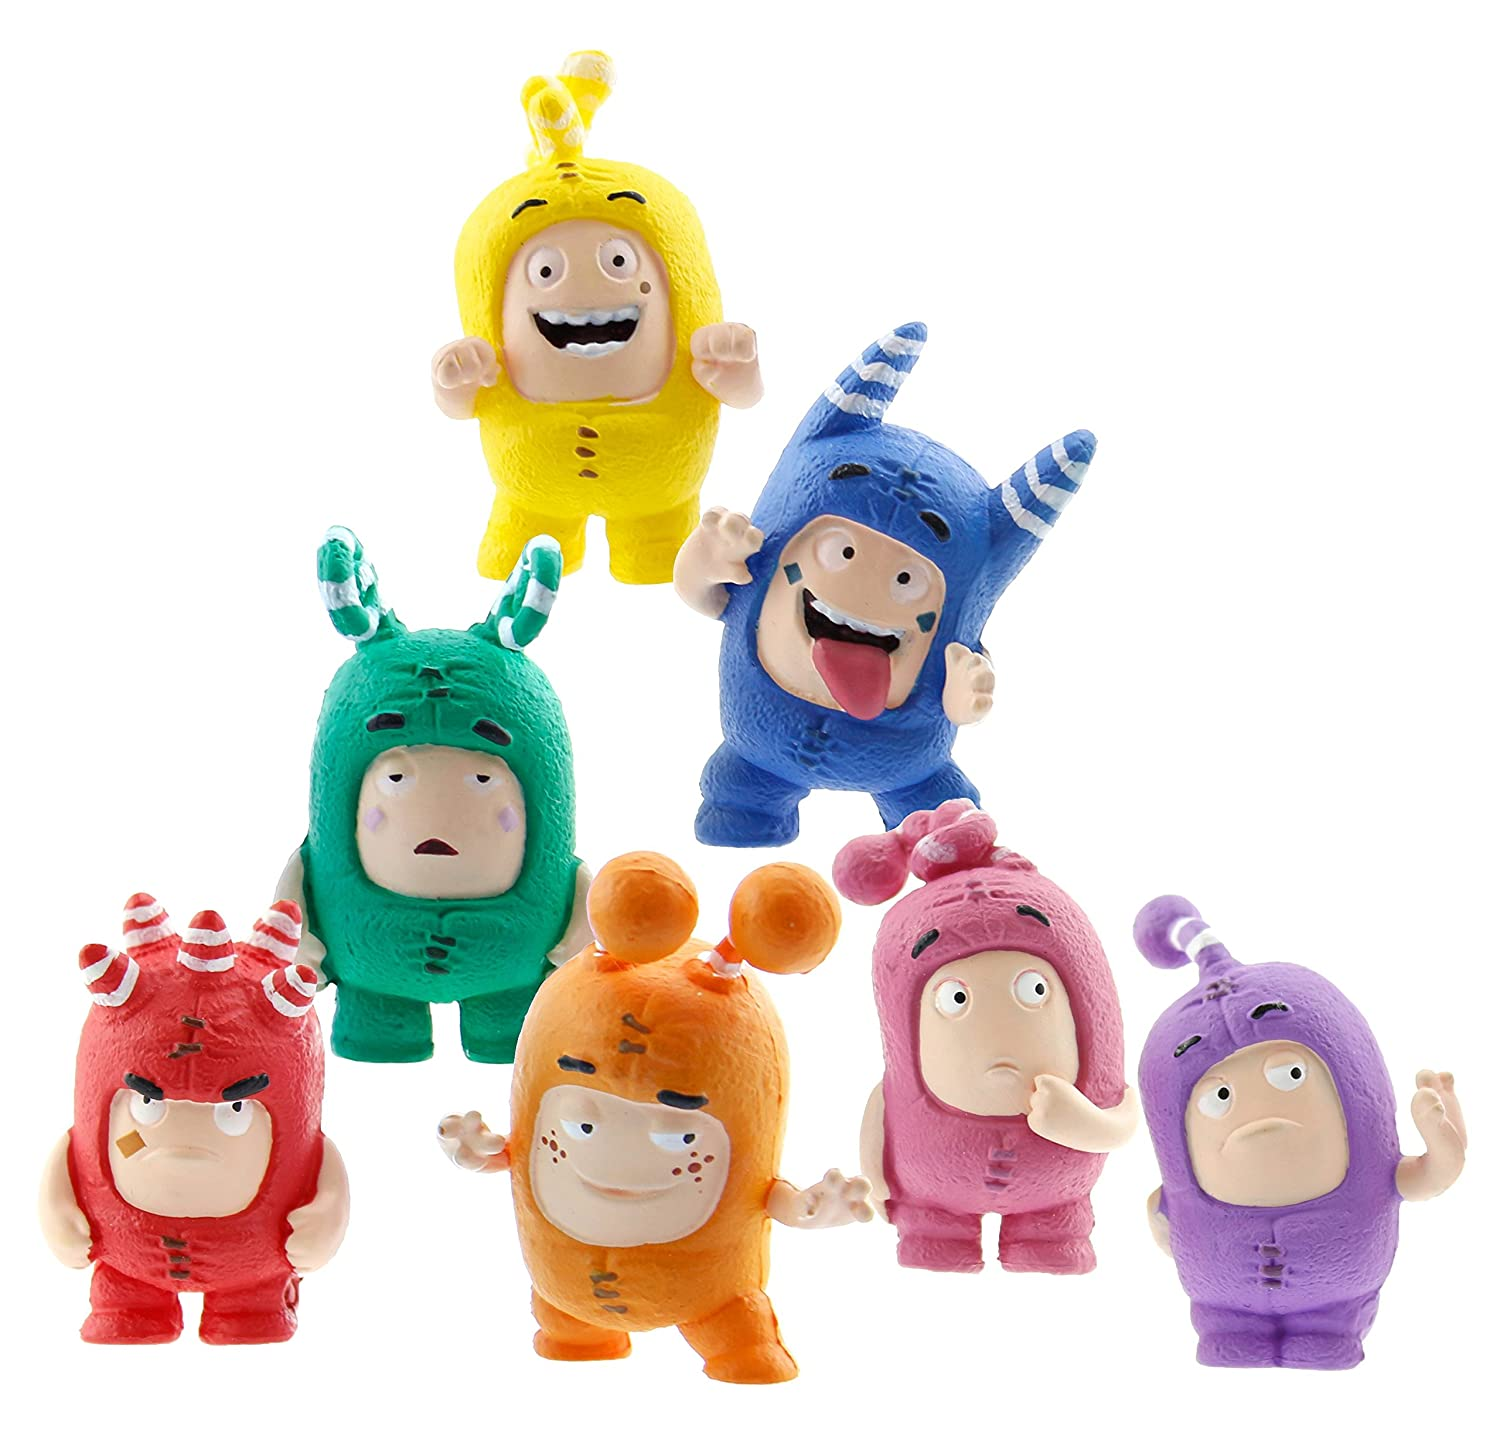 Oddbods - Lote de Figuras Mini: Golden Bear: Amazon.es: Juguetes y juegos